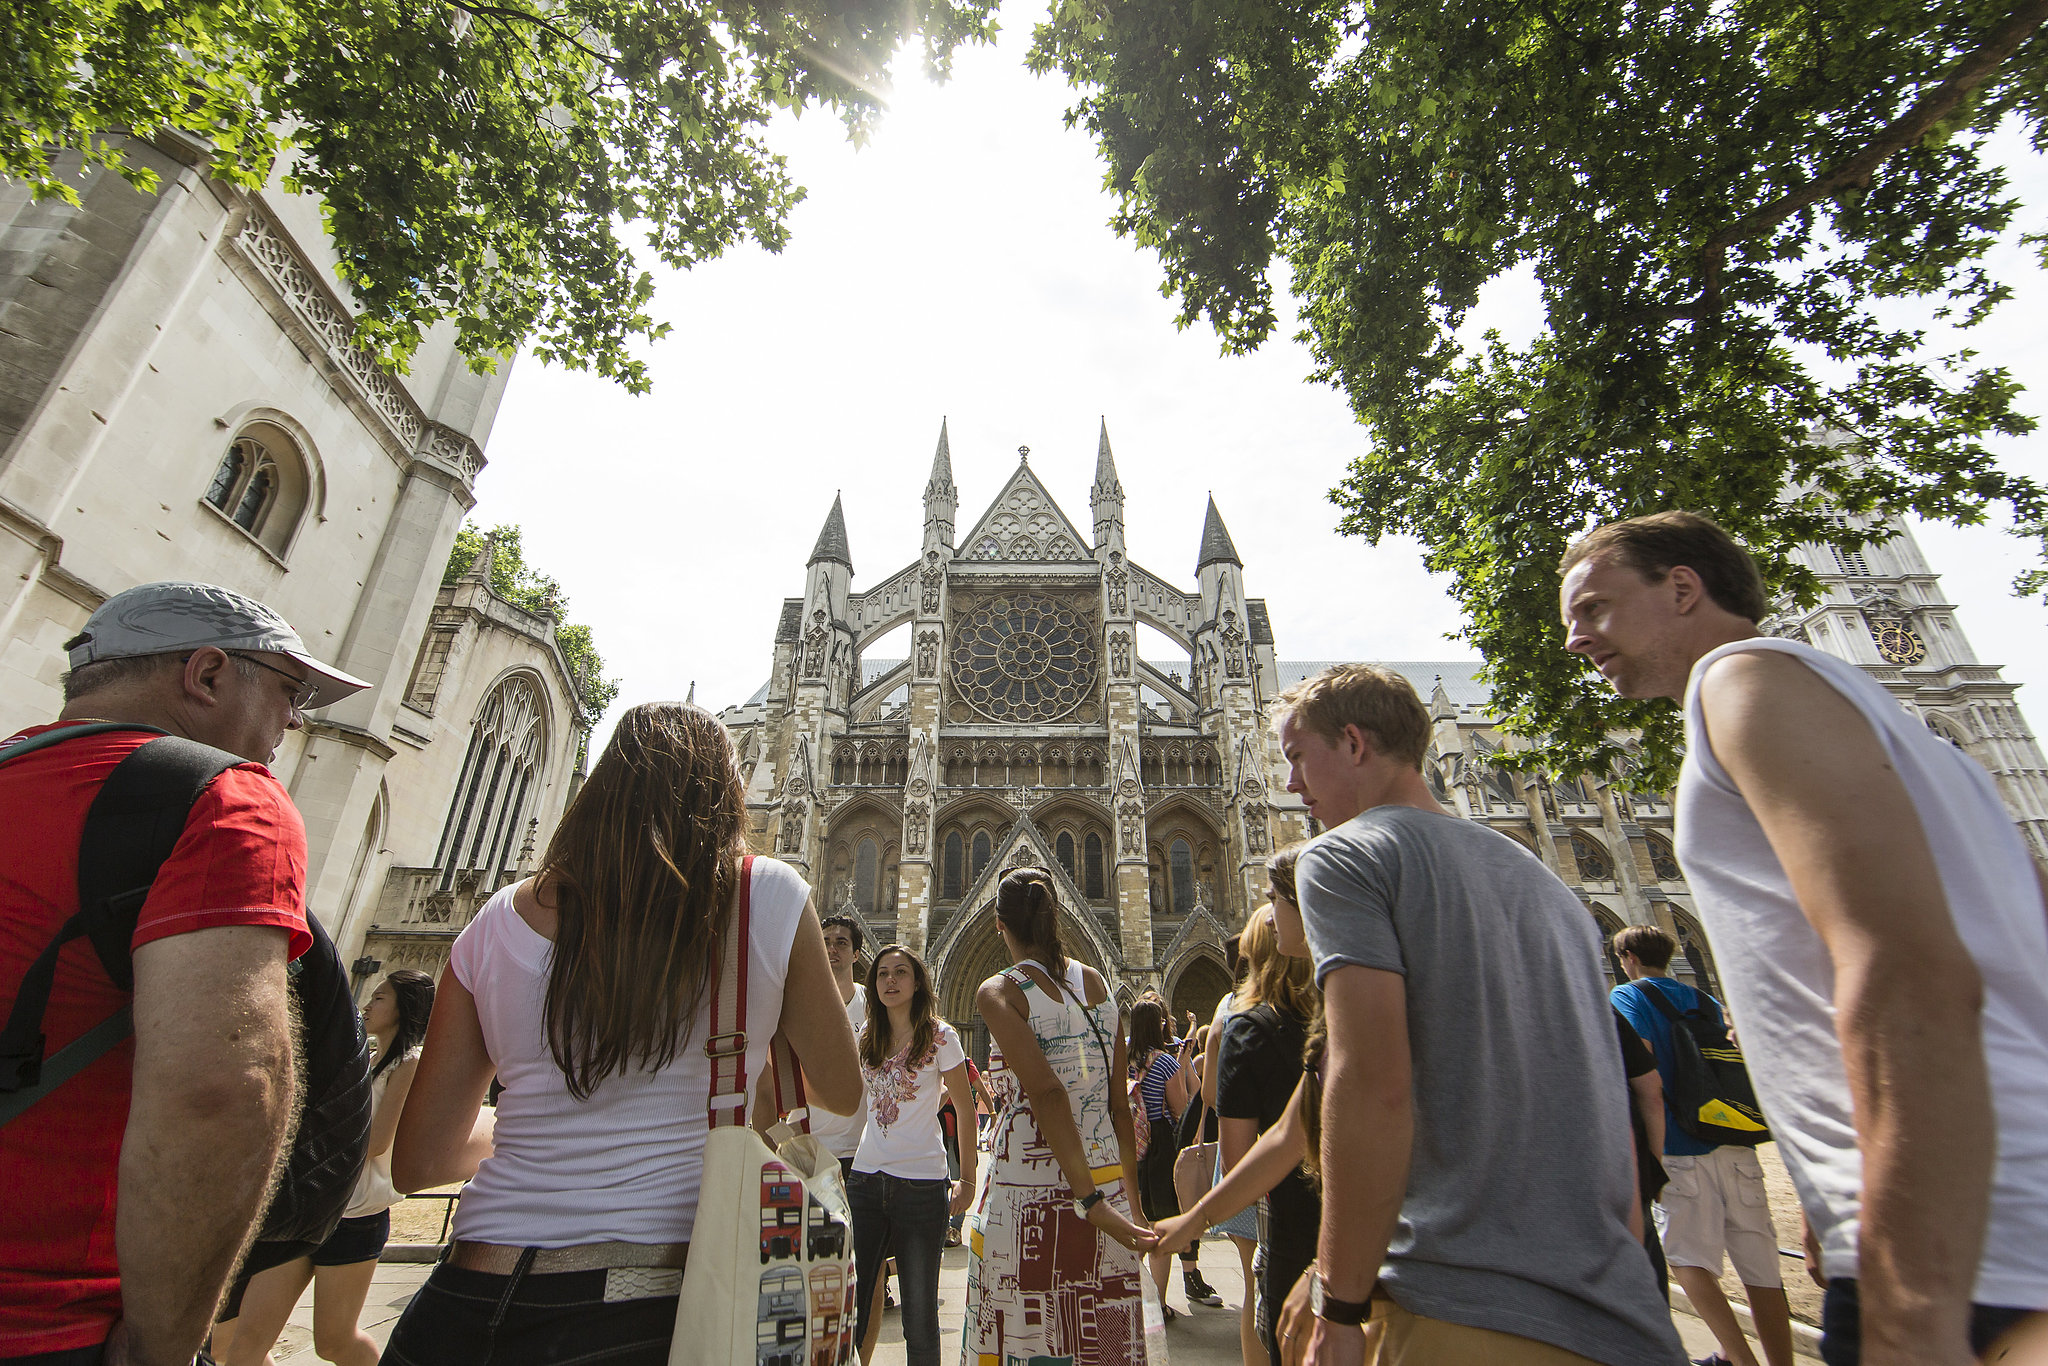 Crowds gathered at Westminster Abbey to hear the bells ringing in honor of the royal baby.